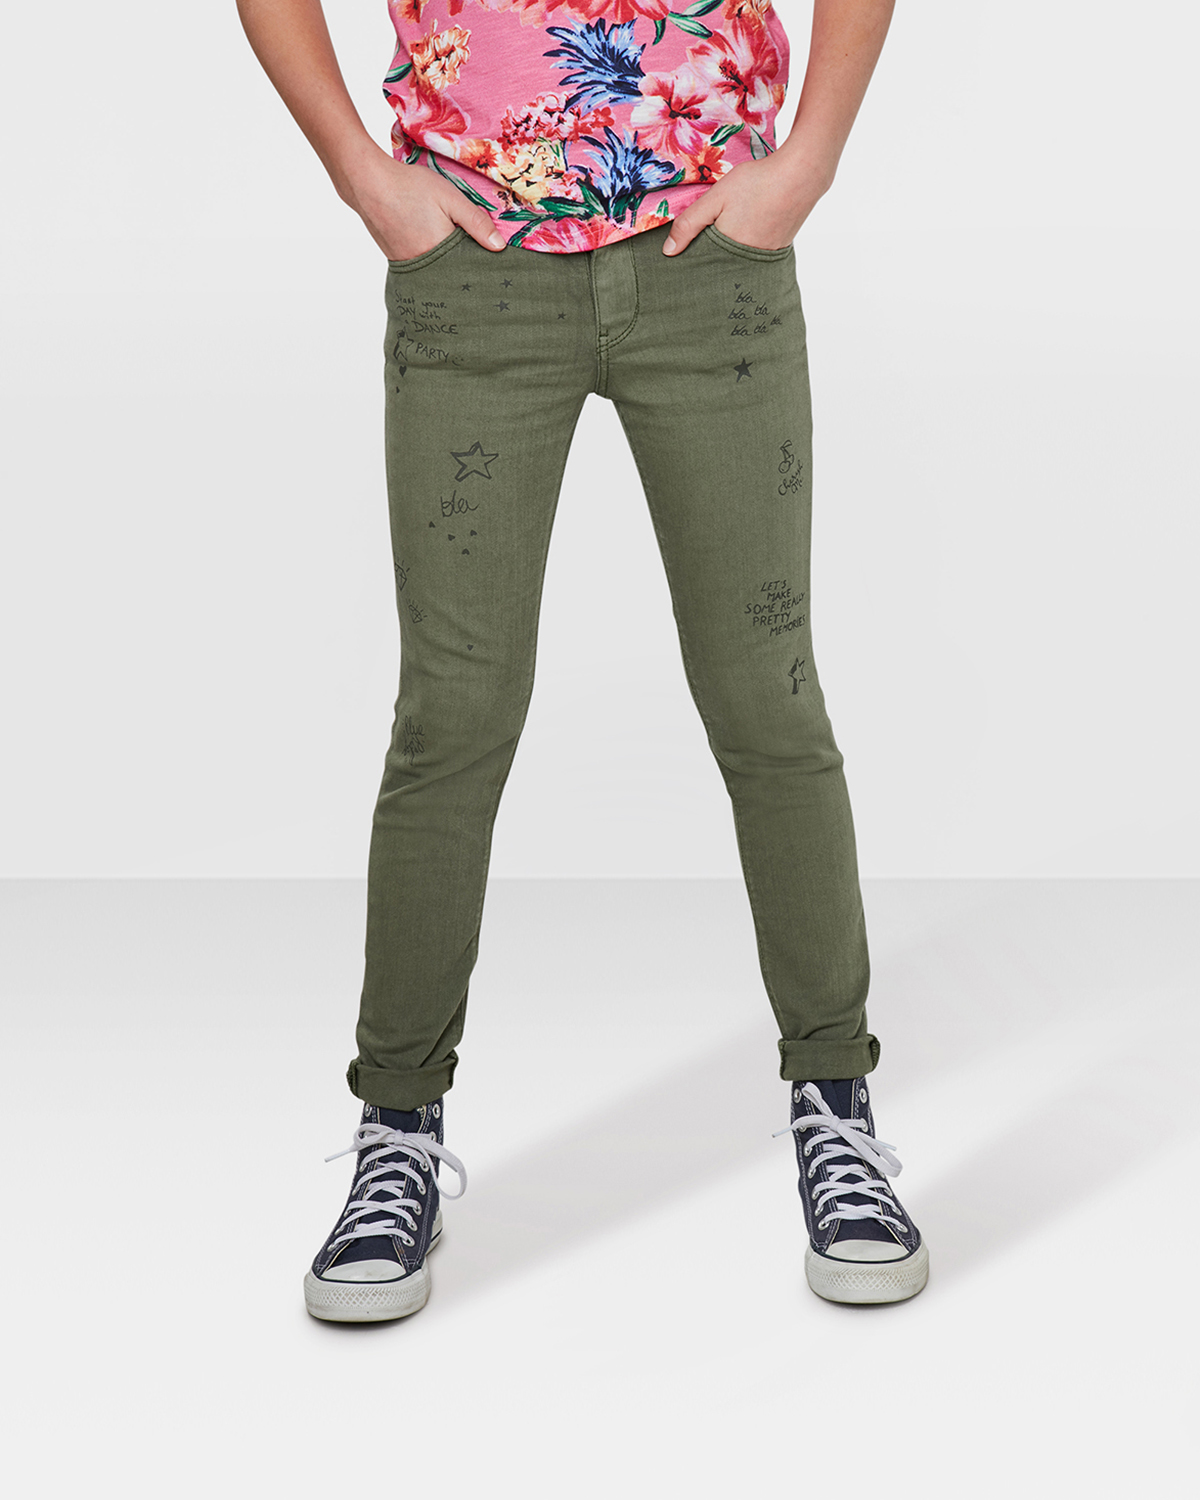 mdchen superskinny jeans mit muster olivgrn - Jeans Mit Muster